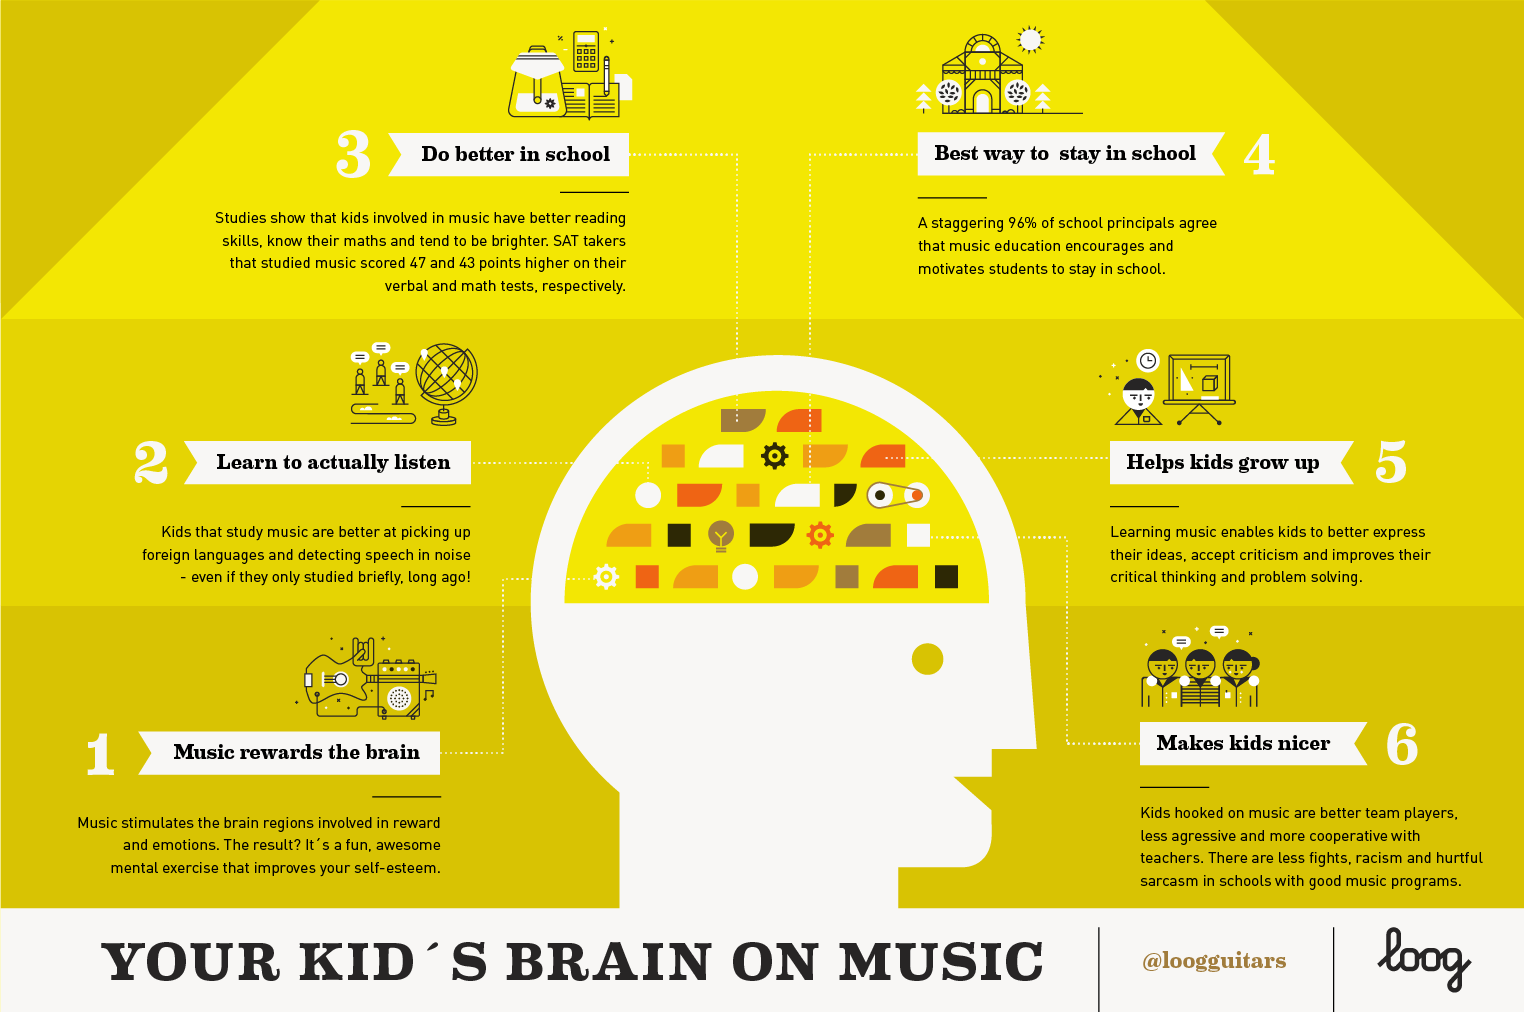 Your Kid's Brain on Music